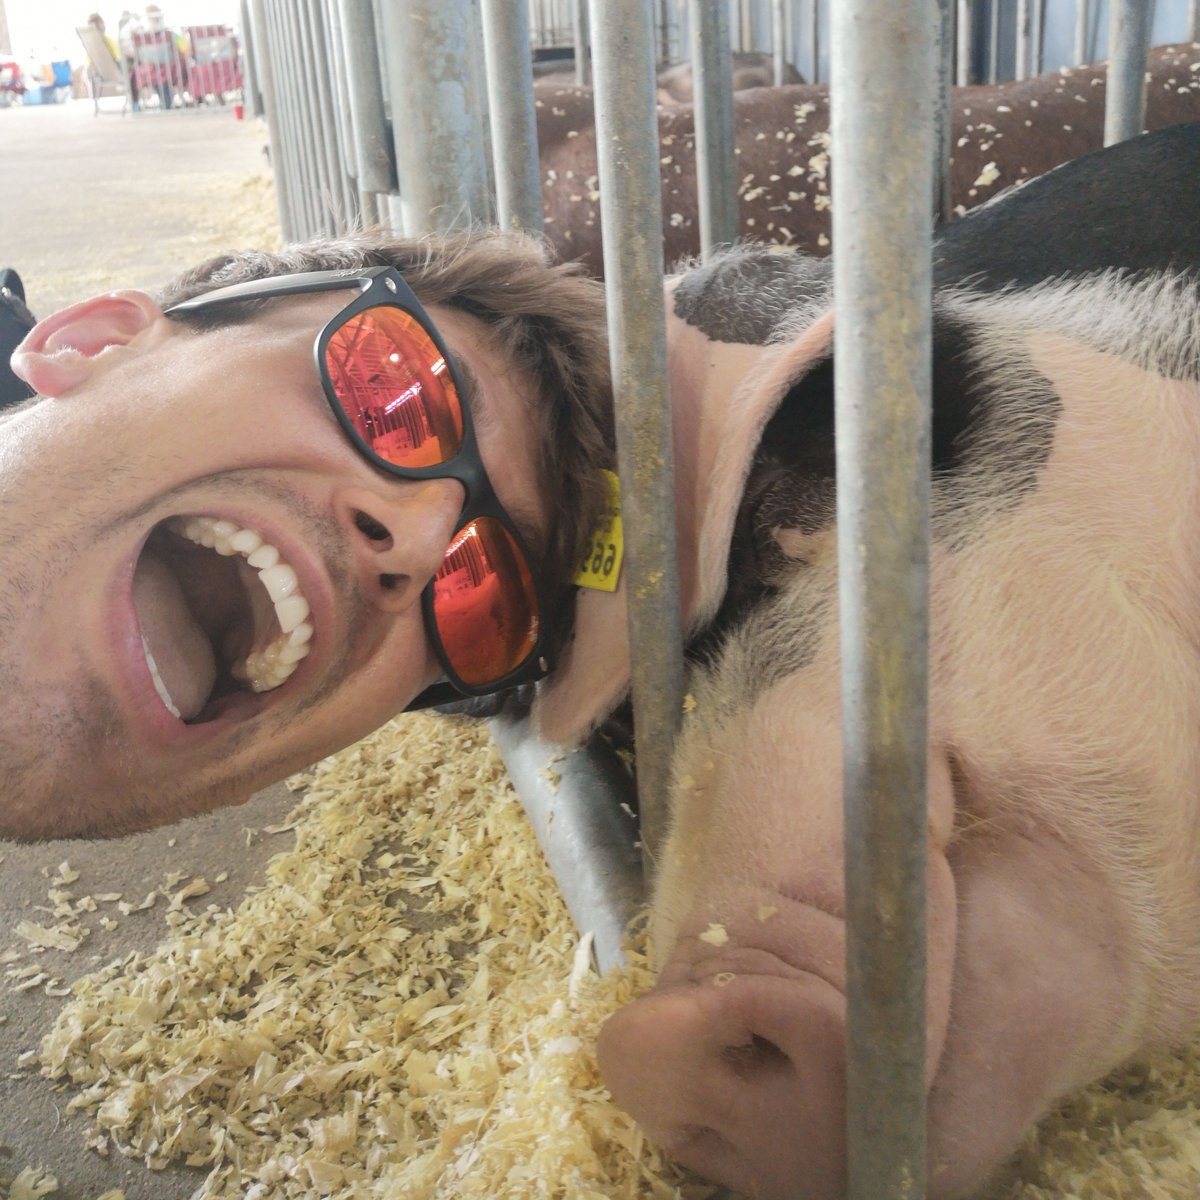 Yes. That is Mike. Yes. That is a pig. Yes. This is a picture of Mike taking a selfie with a pig. All is explained in the final instalment of our #GameChangers series! ->  https://t.co/OoBiL8gbH7#ad